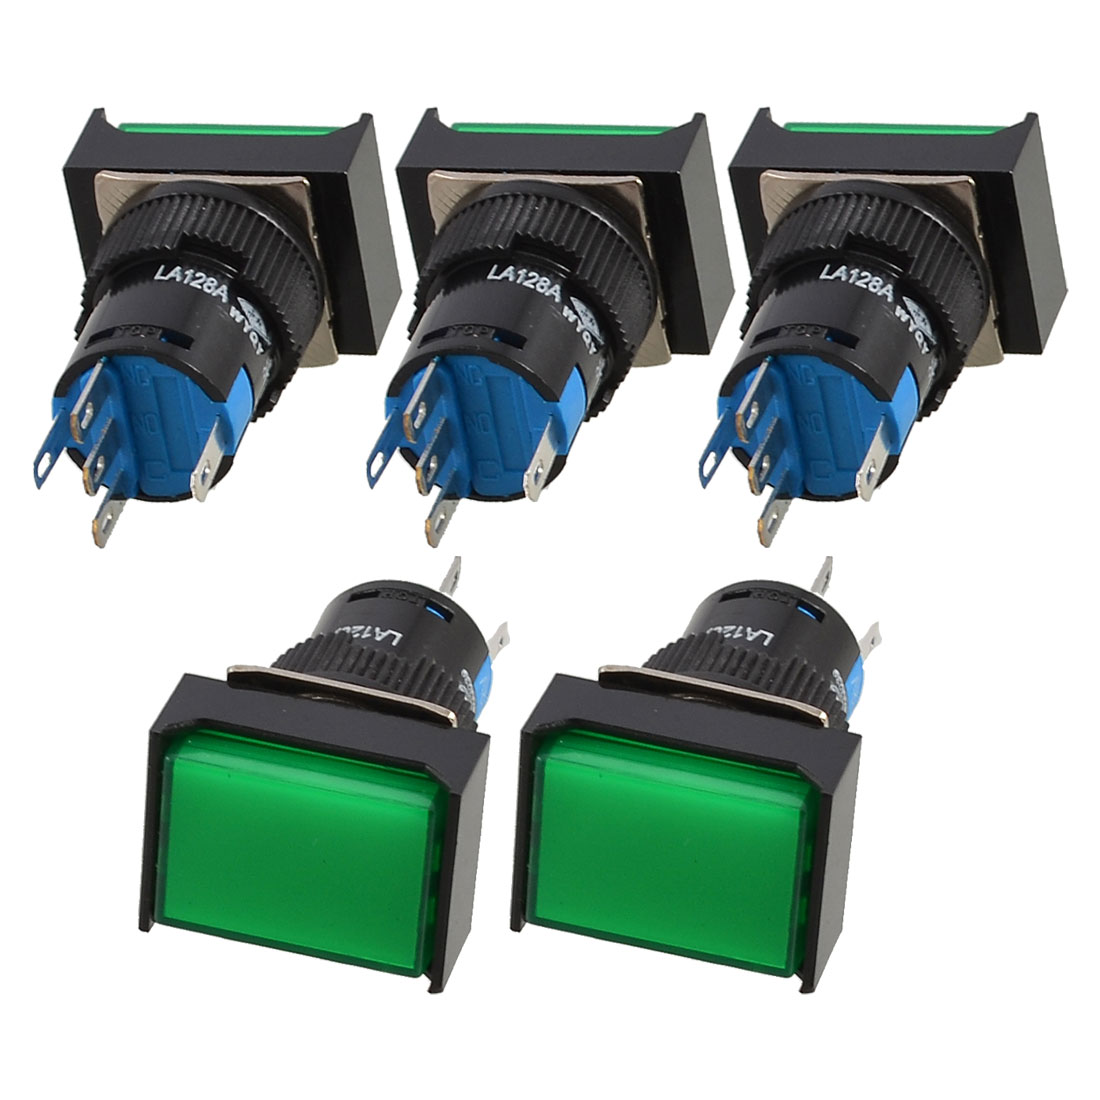 DC 12V Green Lamp 1NO 1NC Latching Rectangular Pushbutton Switch 5 Pcs